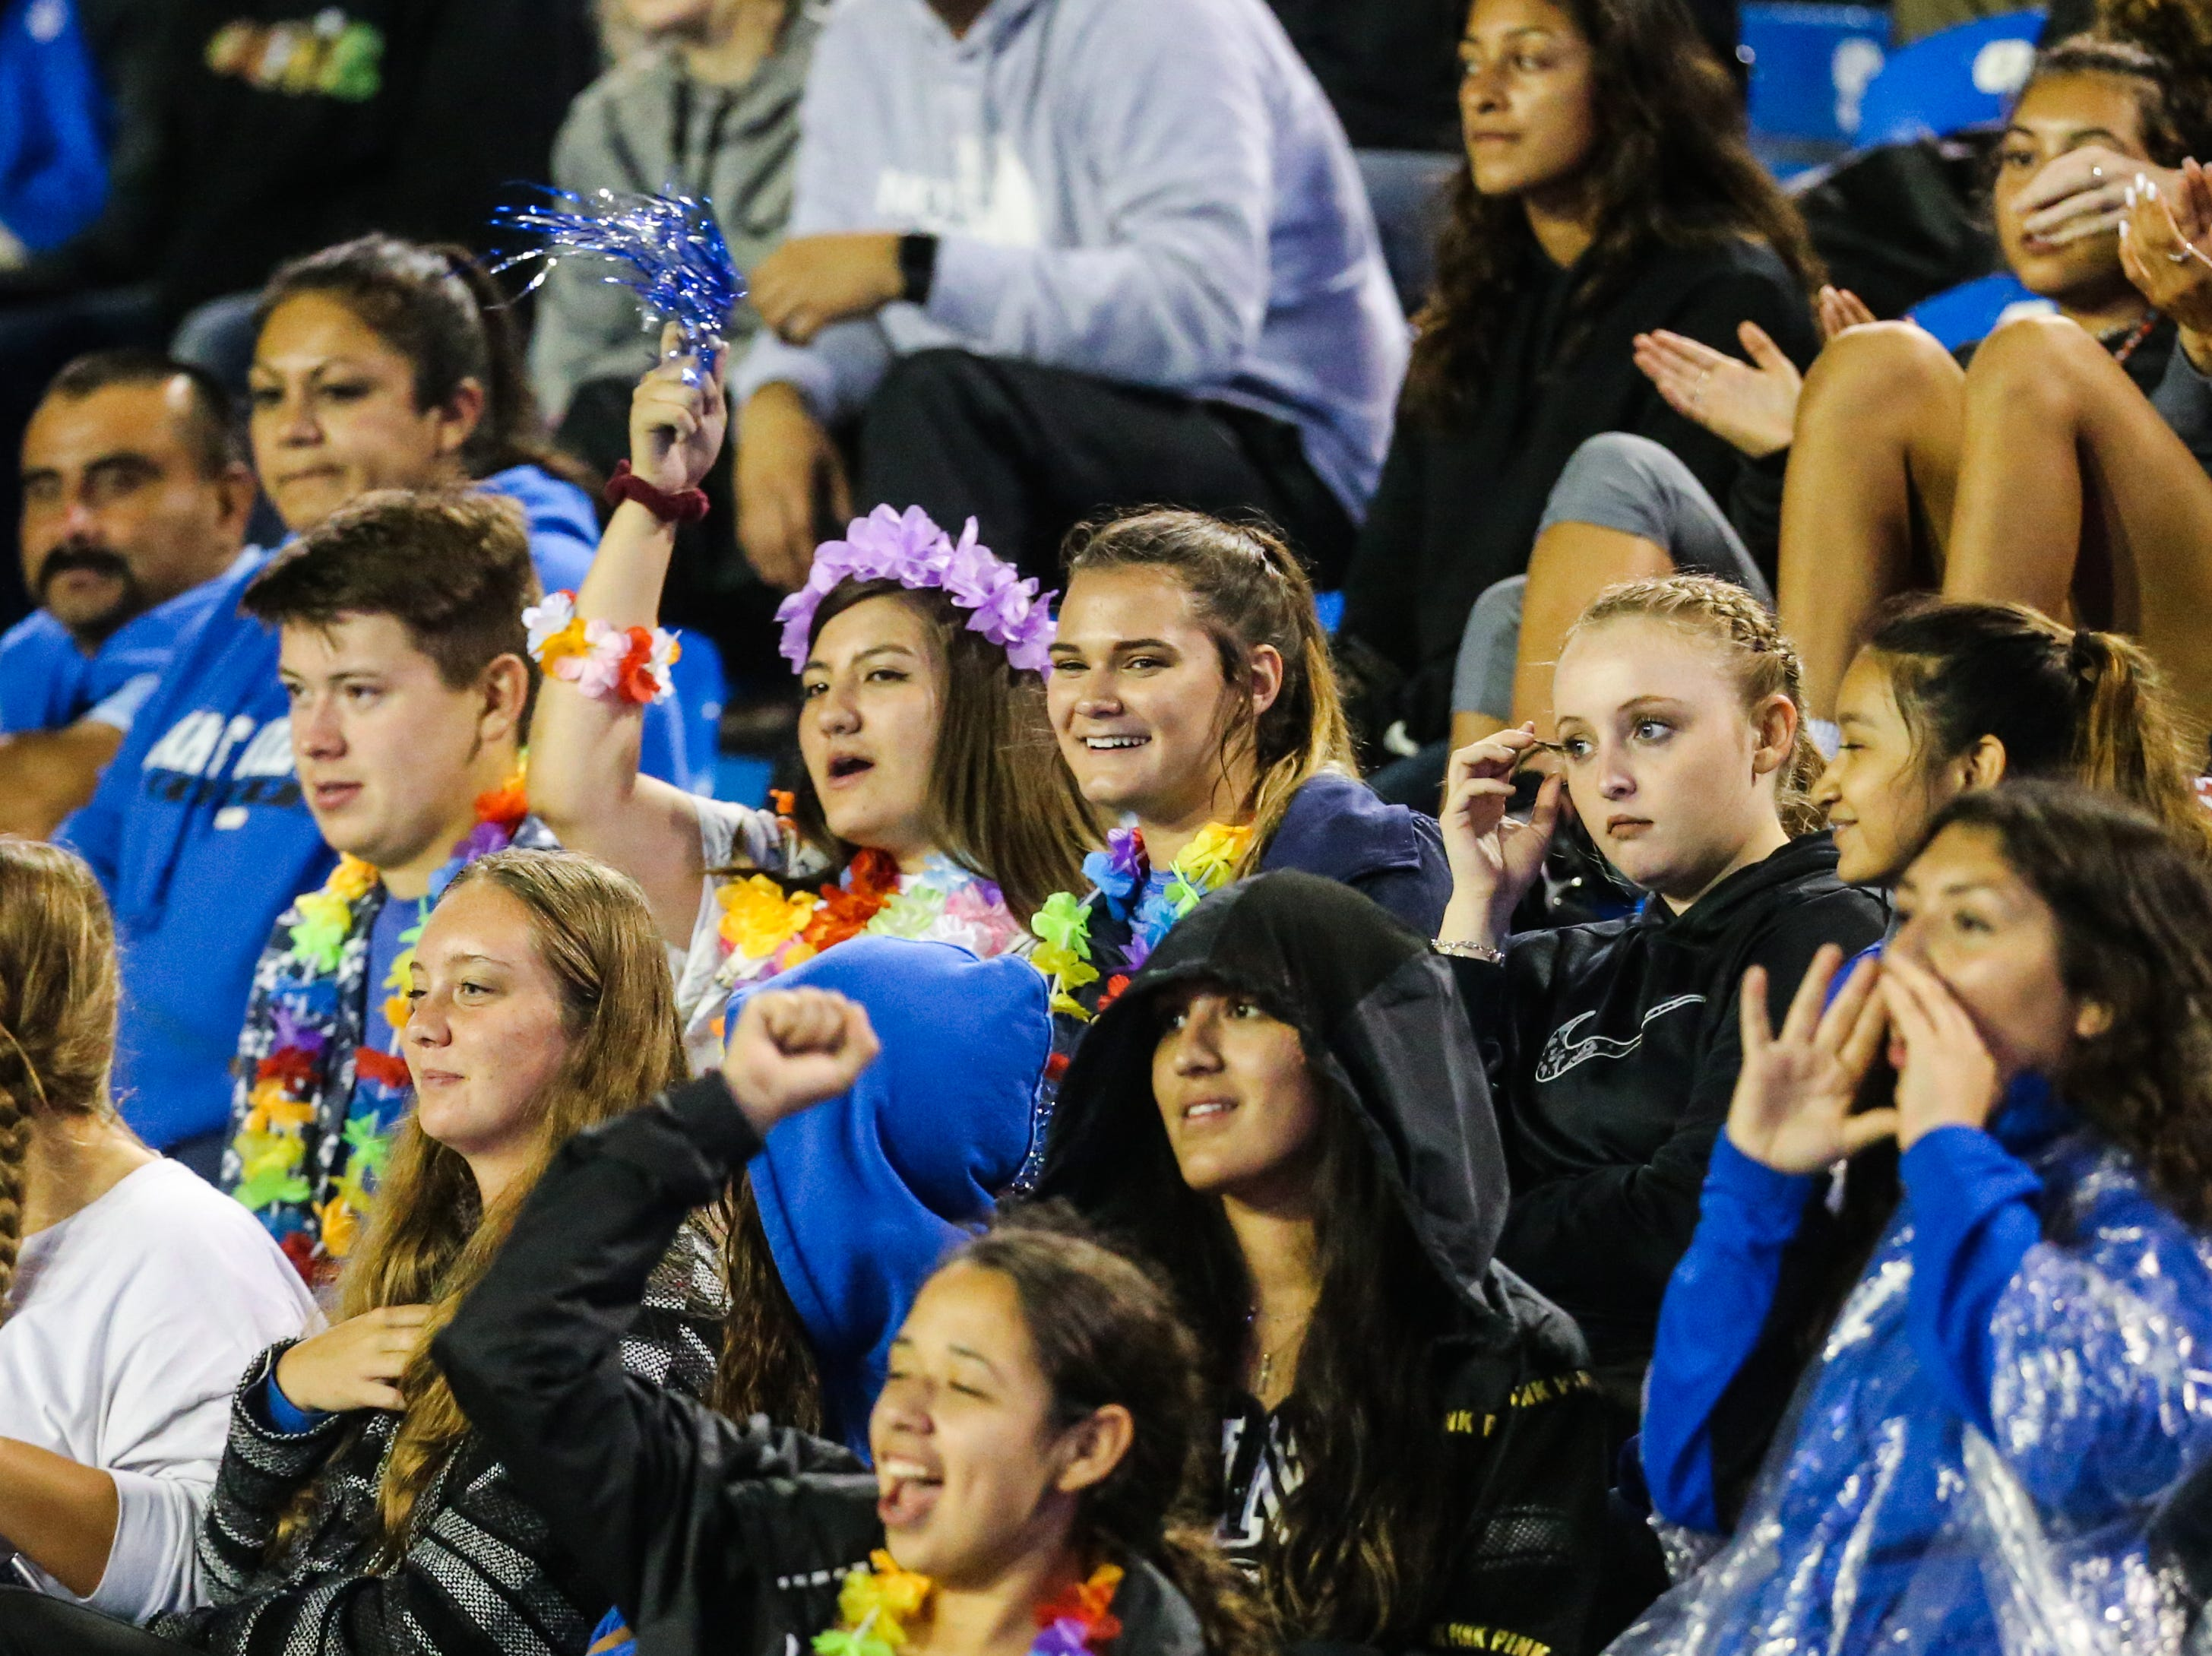 Lake View fans cheer on their team during the game against Fabens Friday, Sept. 7, 2018, at San Angelo Stadium.